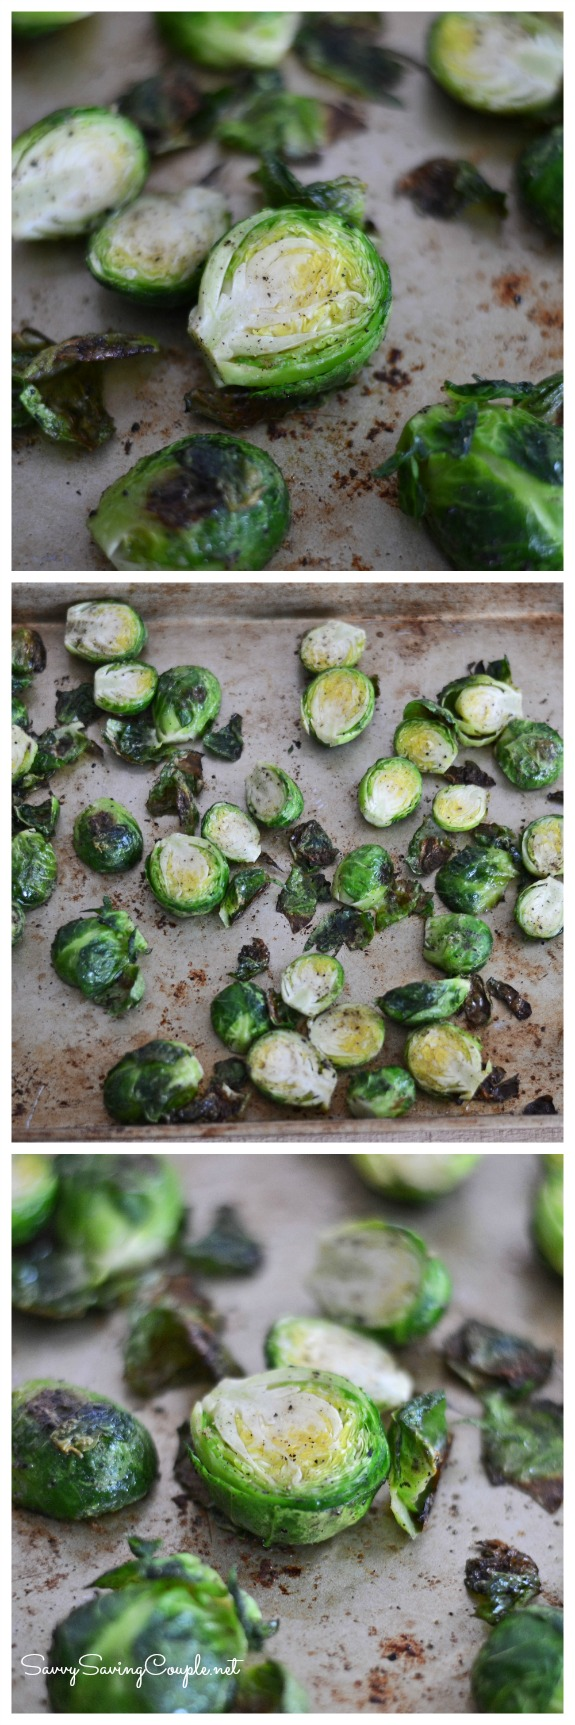 oven-baked-brussel-sprouts